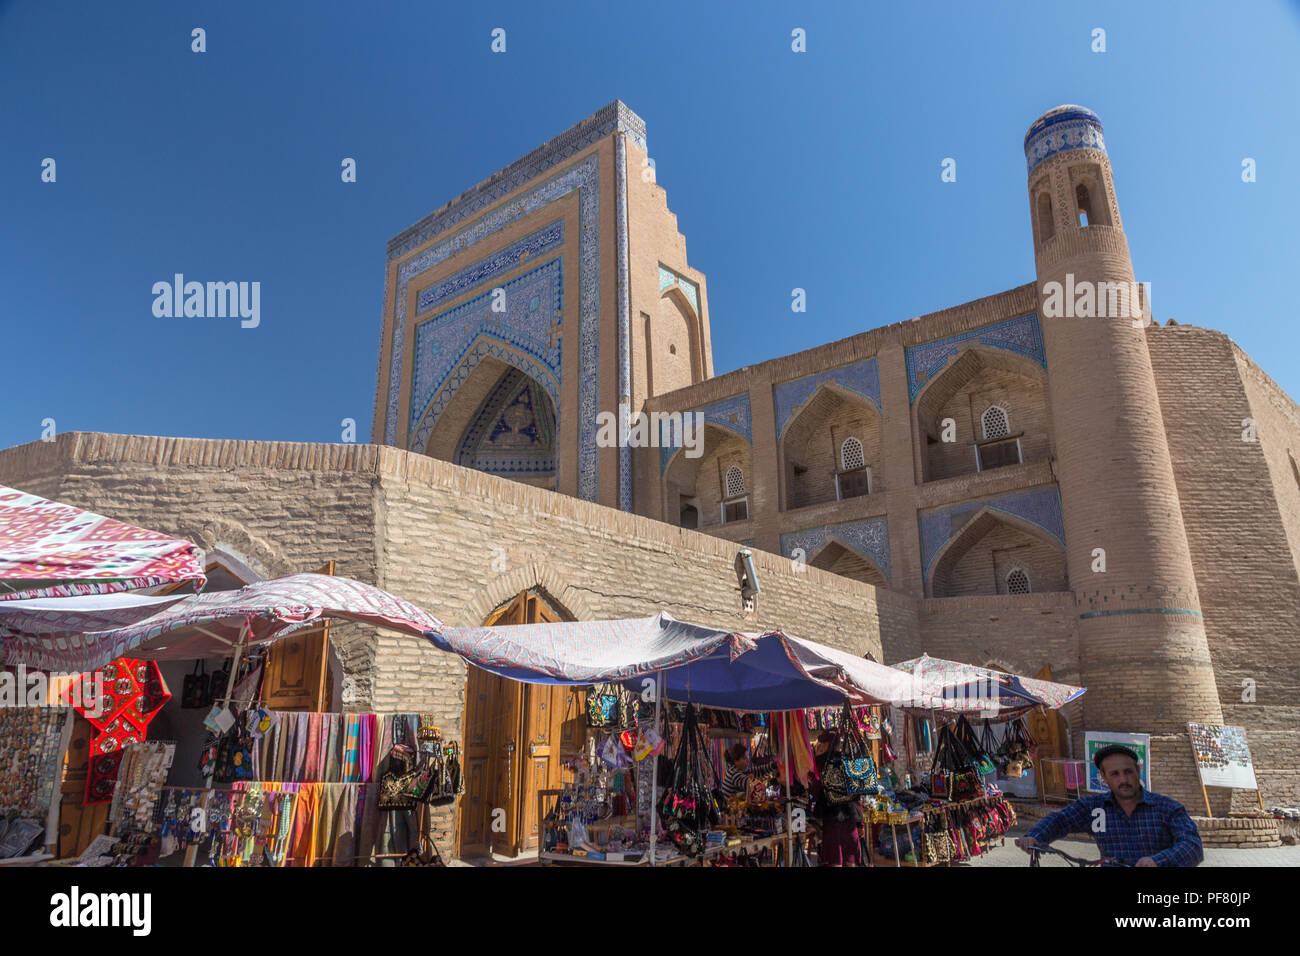 Itchan Kala, walled inner town of Khiva, in Khorezm Province, Uzbekistan, Silk Road, Central Asia - Stock Image